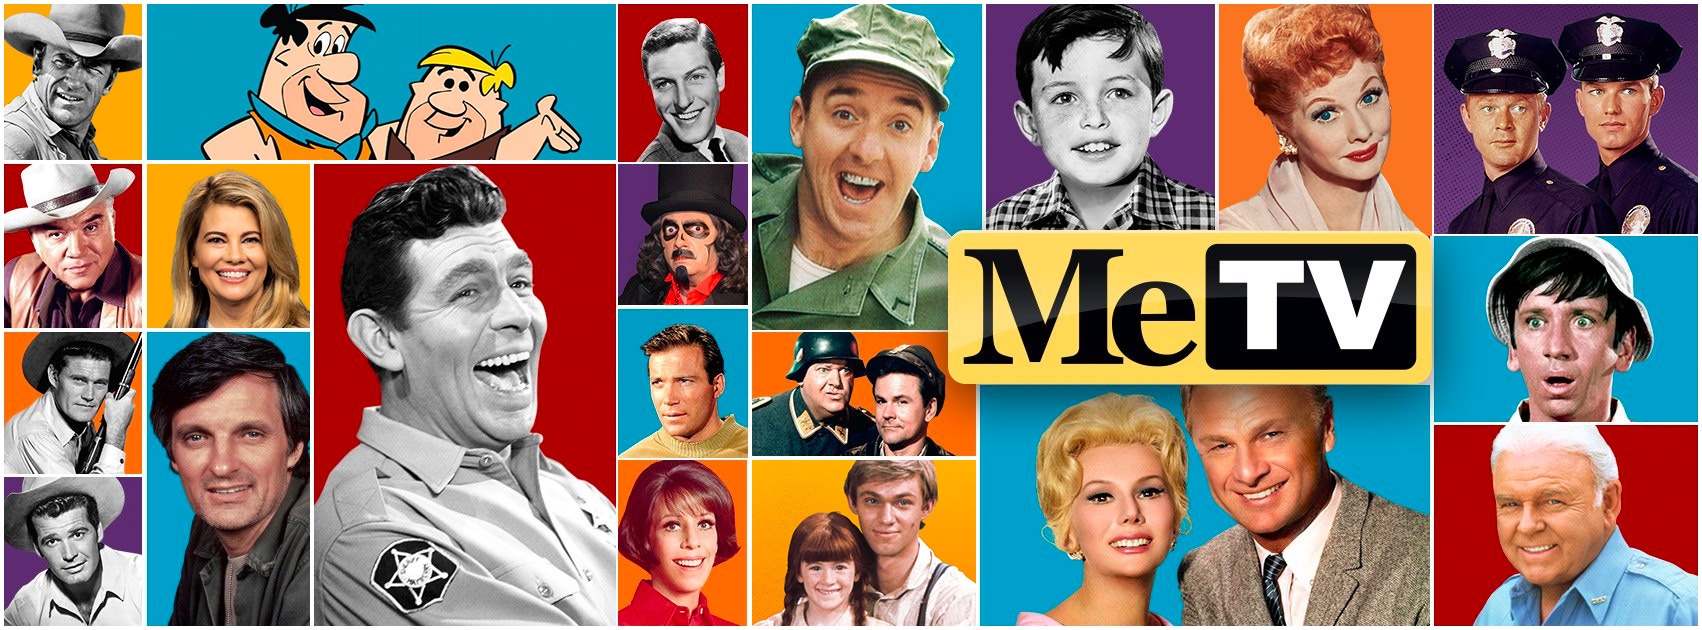 metv cable shows